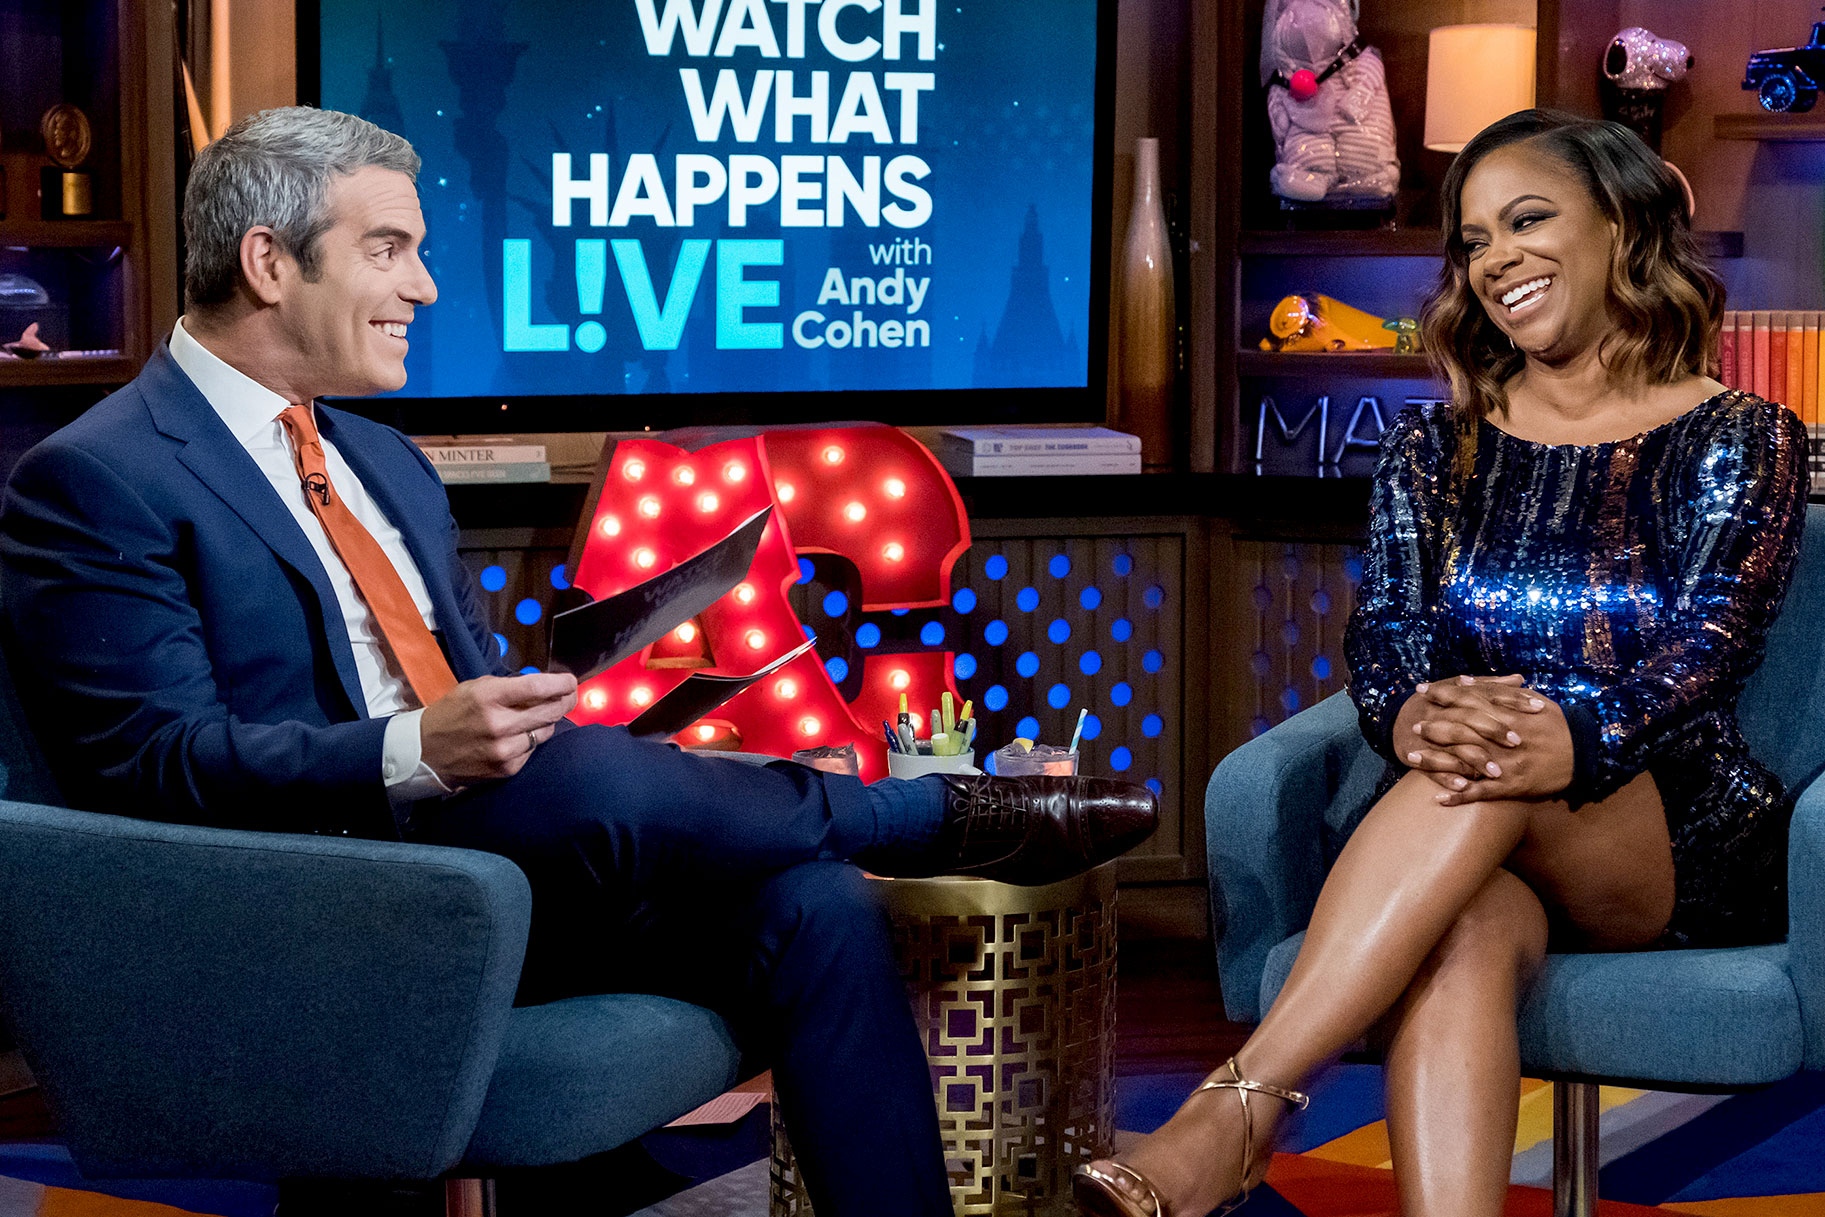 Kandi Burruss's photo for Andy Cohen's birthday will make you smile